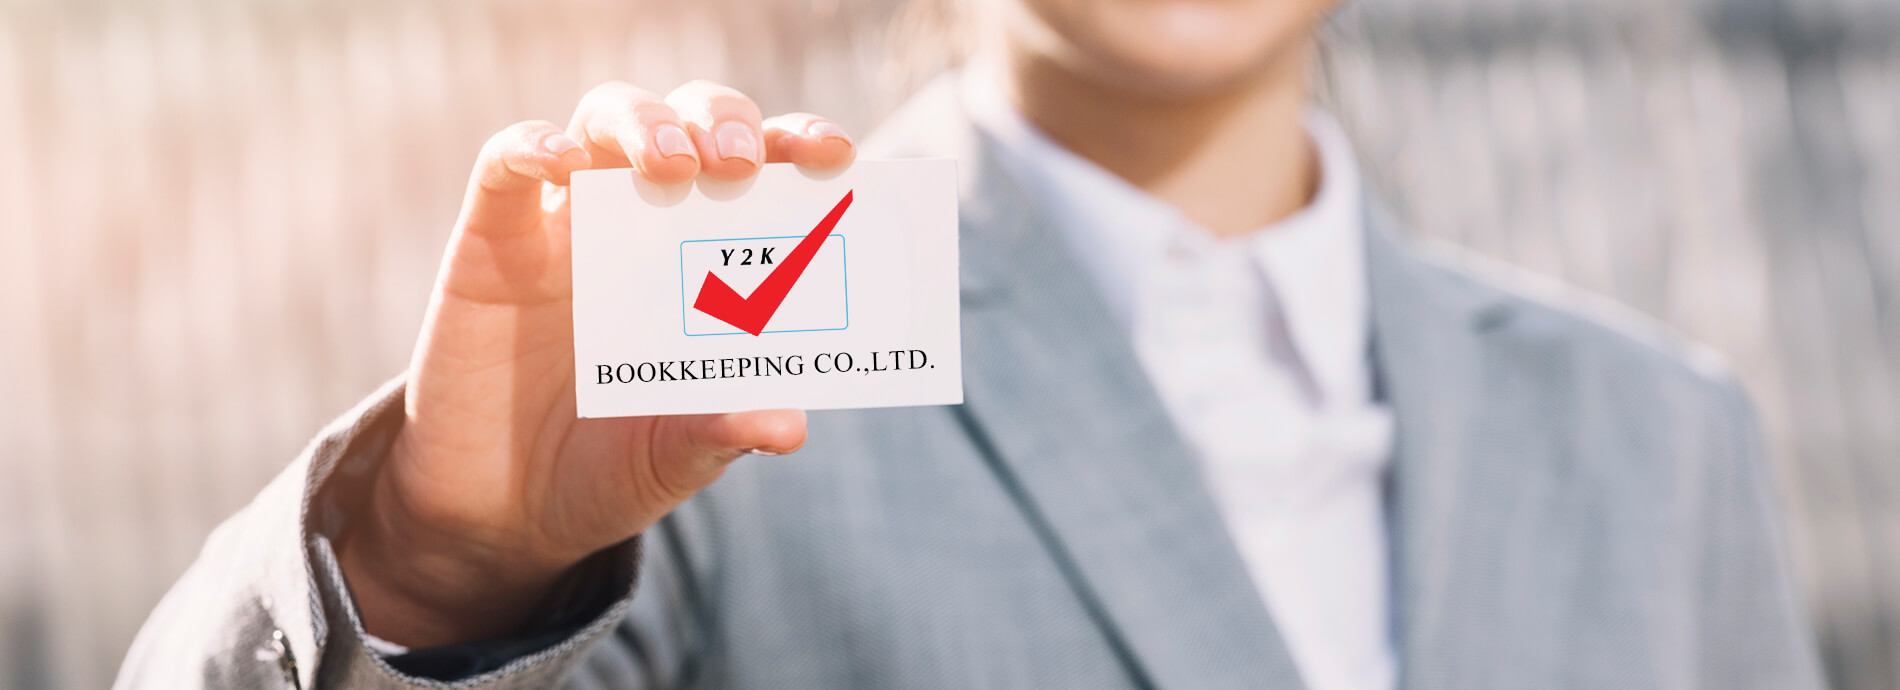 bookkeeping contact